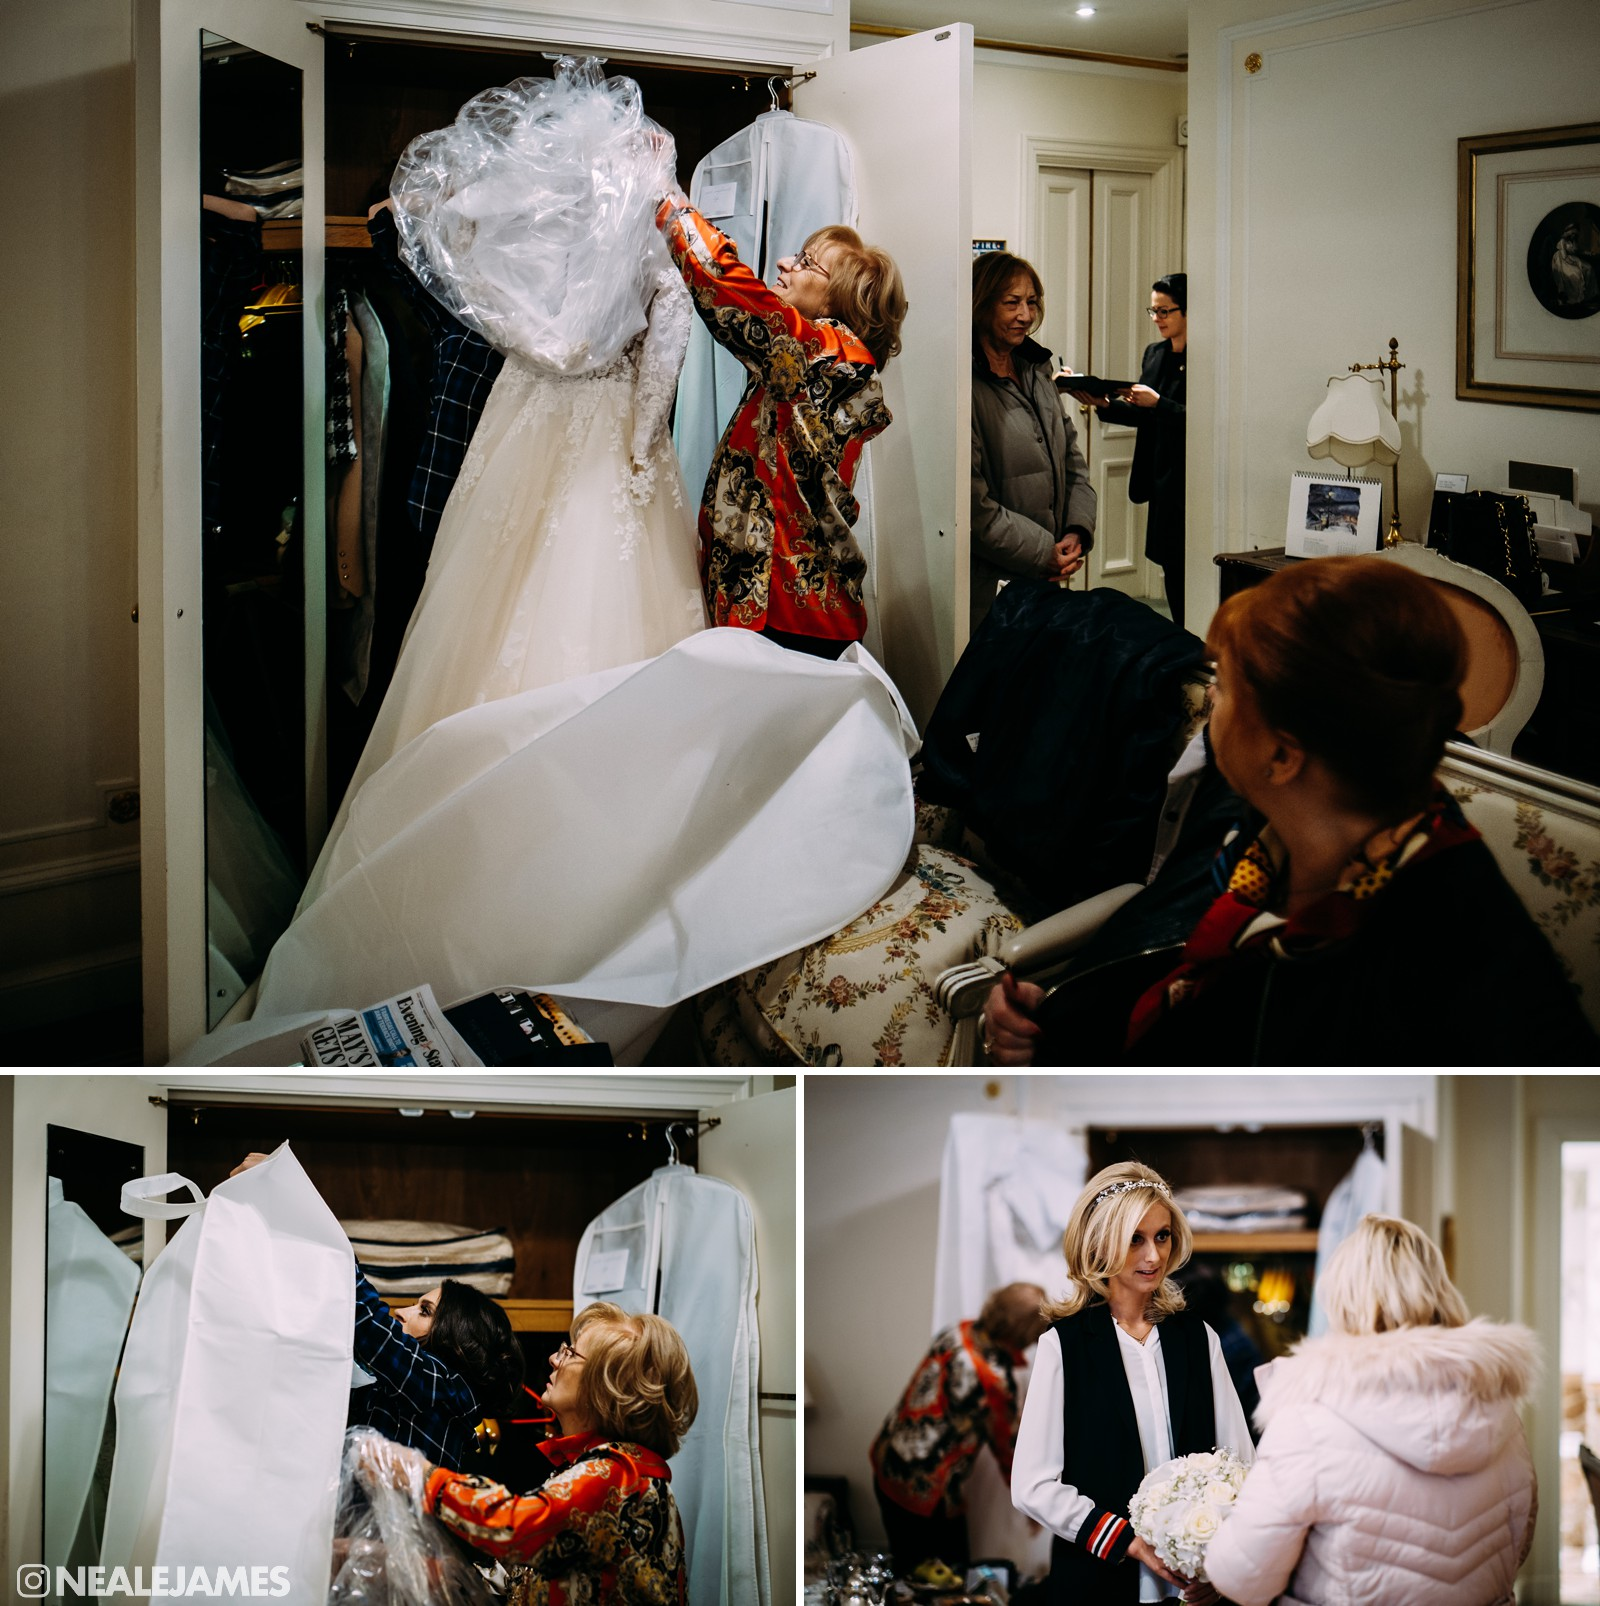 A picture of preparations as a bride gets ready for her wedding at The Ritz London